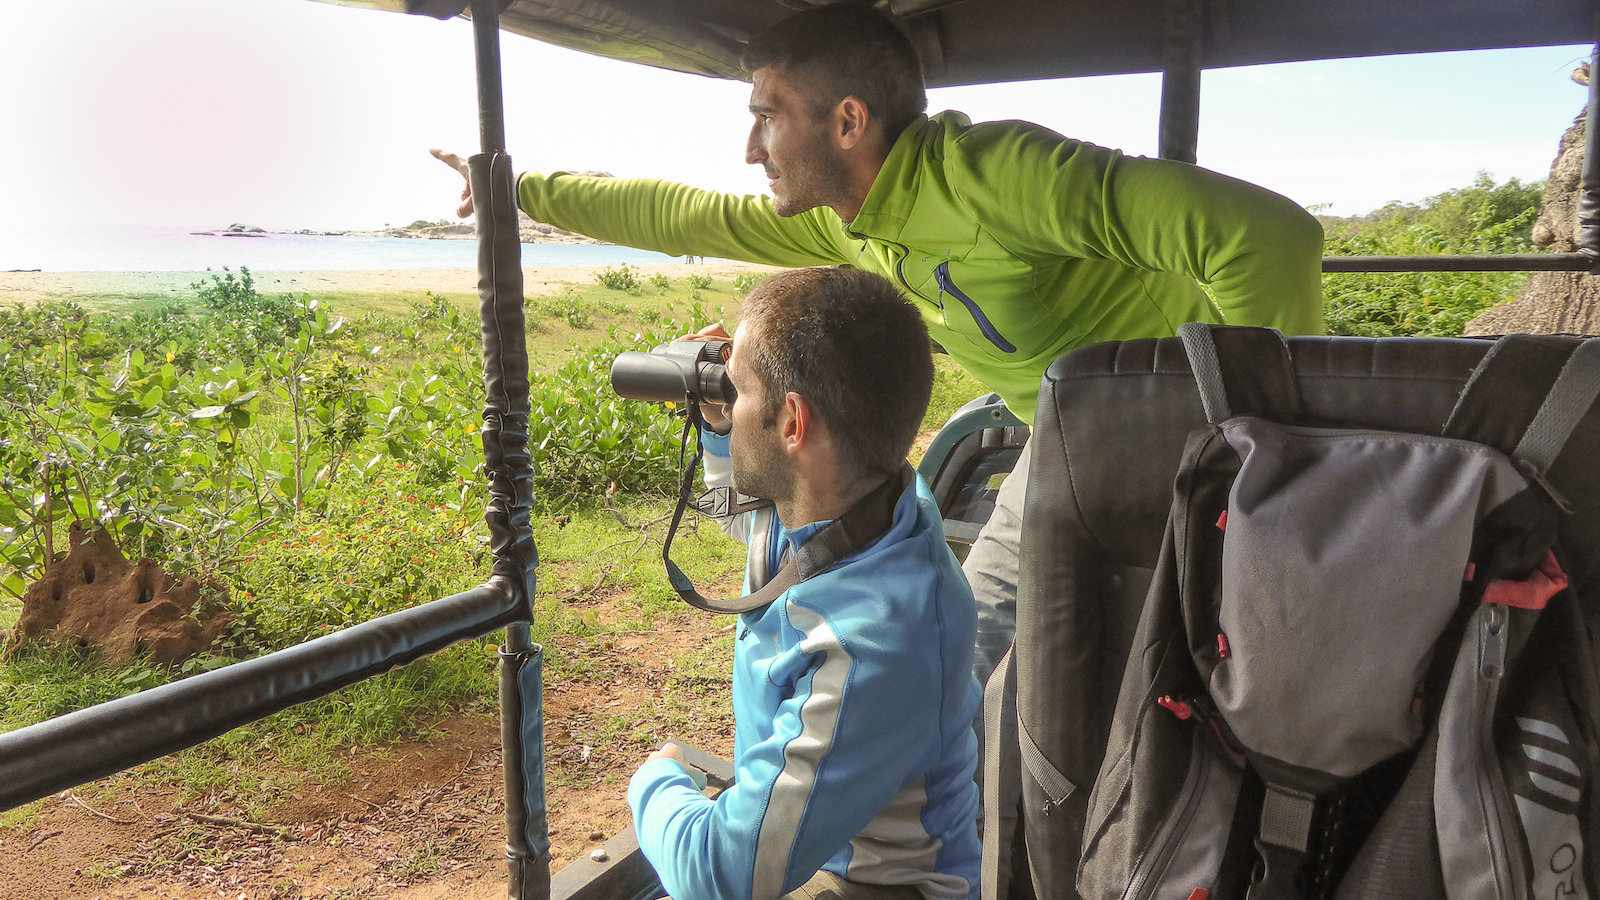 Wear long sleeved clothes to protect yourself on a safari in Udawalawe